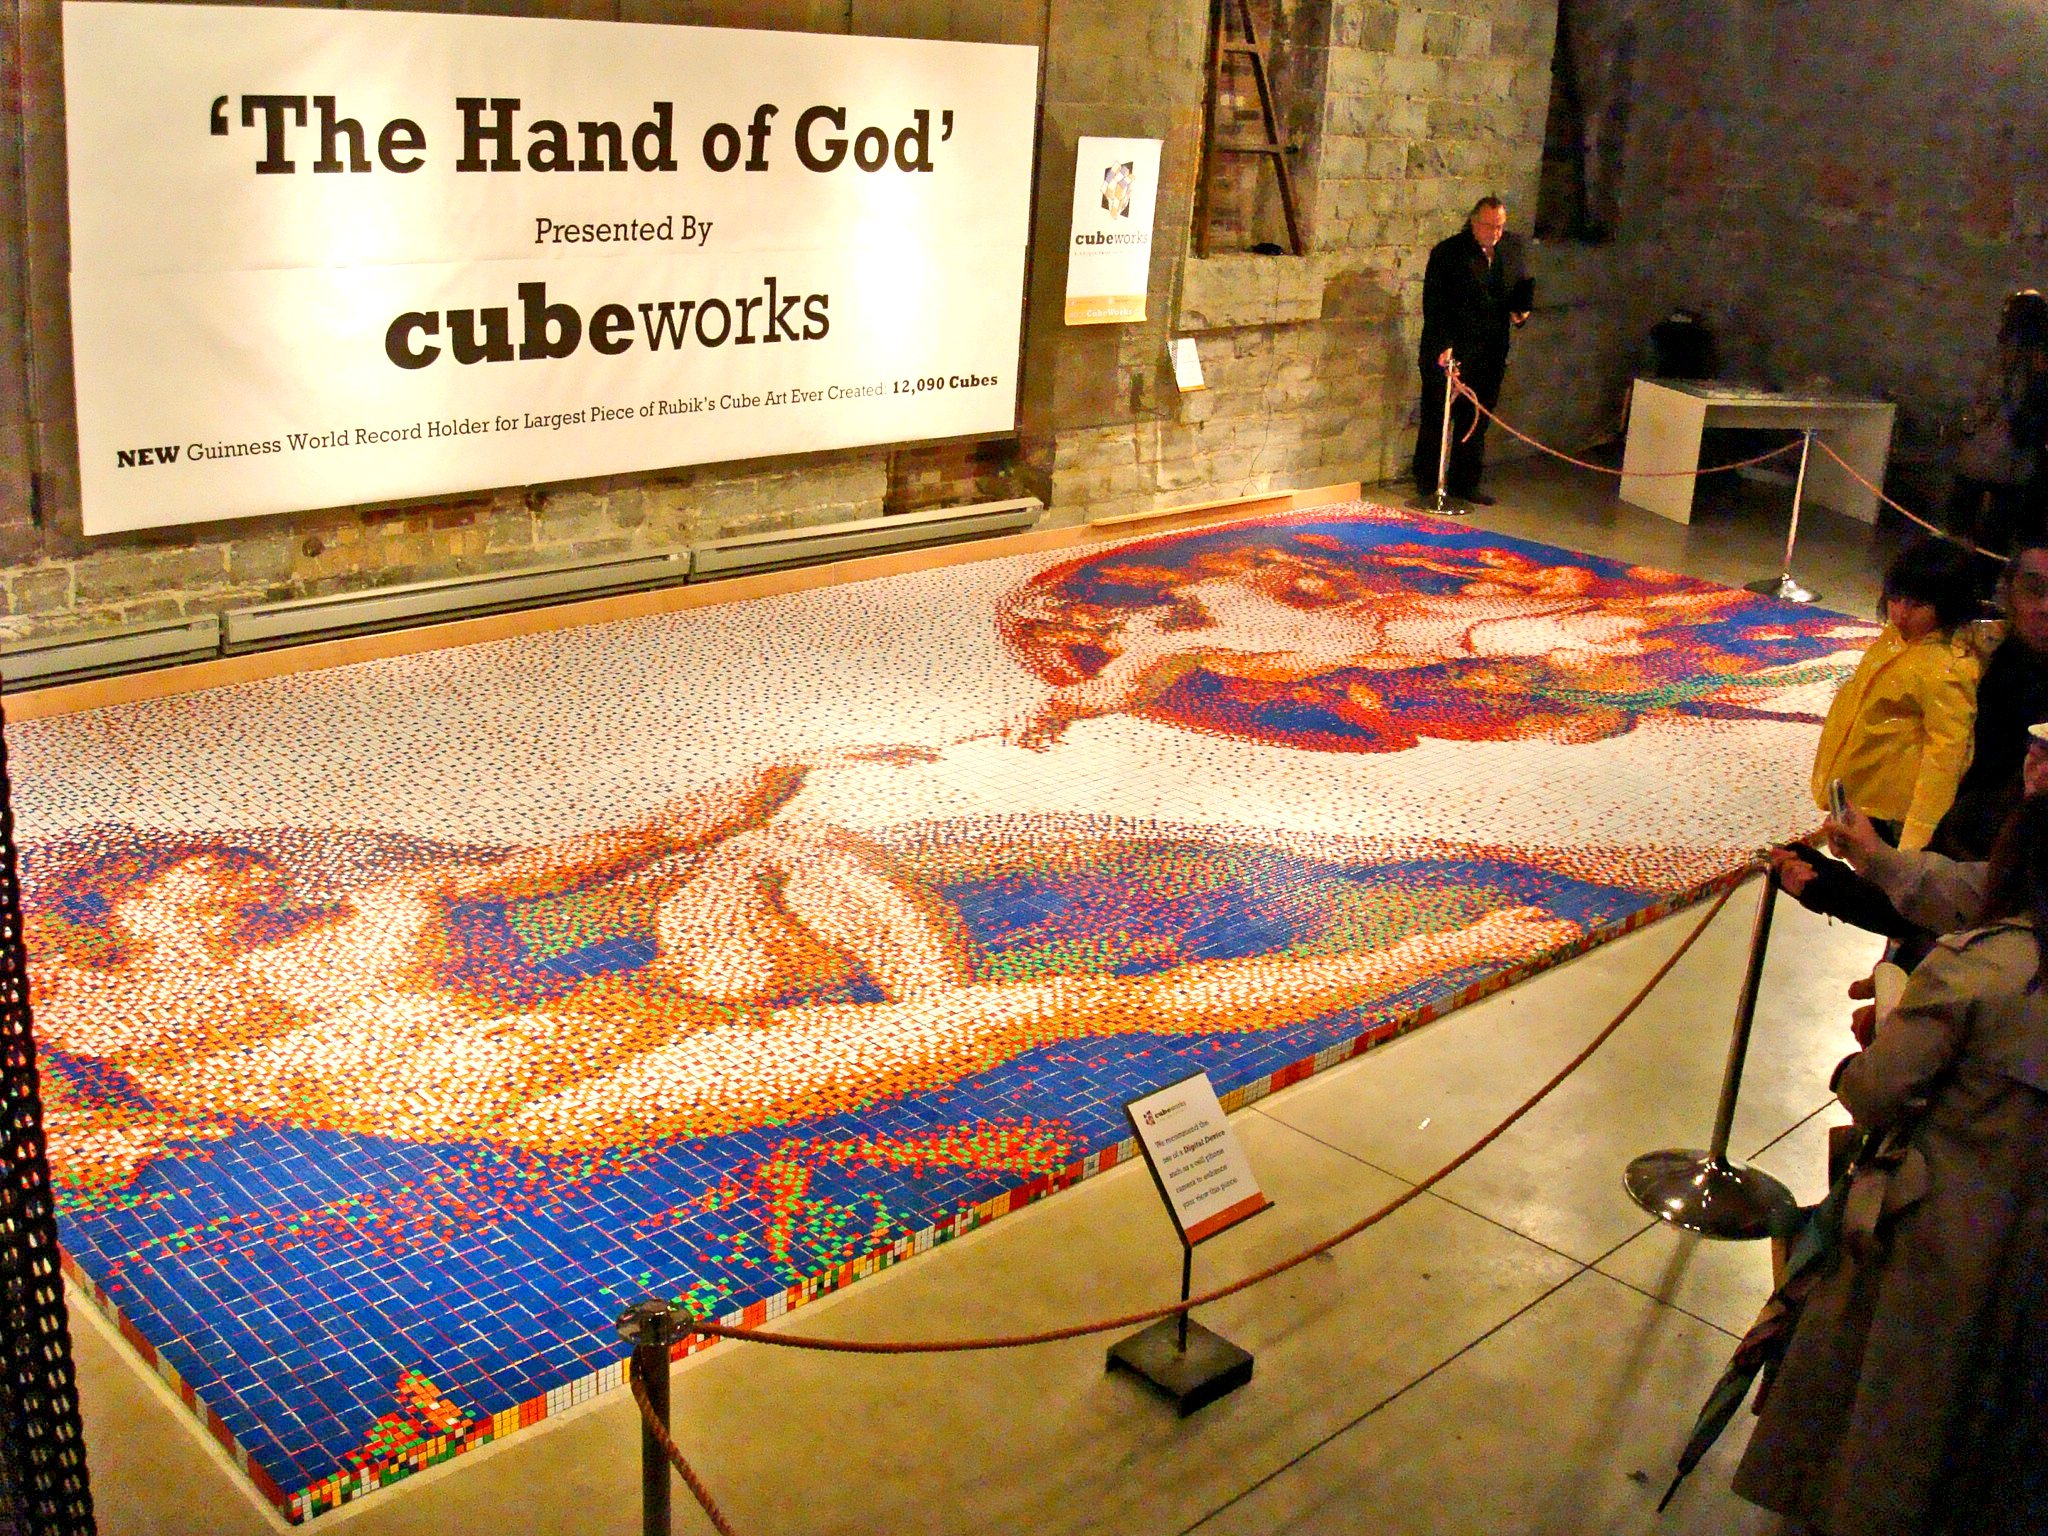 On May 30, an exhibition dedicated to the 40th anniversary of the Rubik's Cube opens.